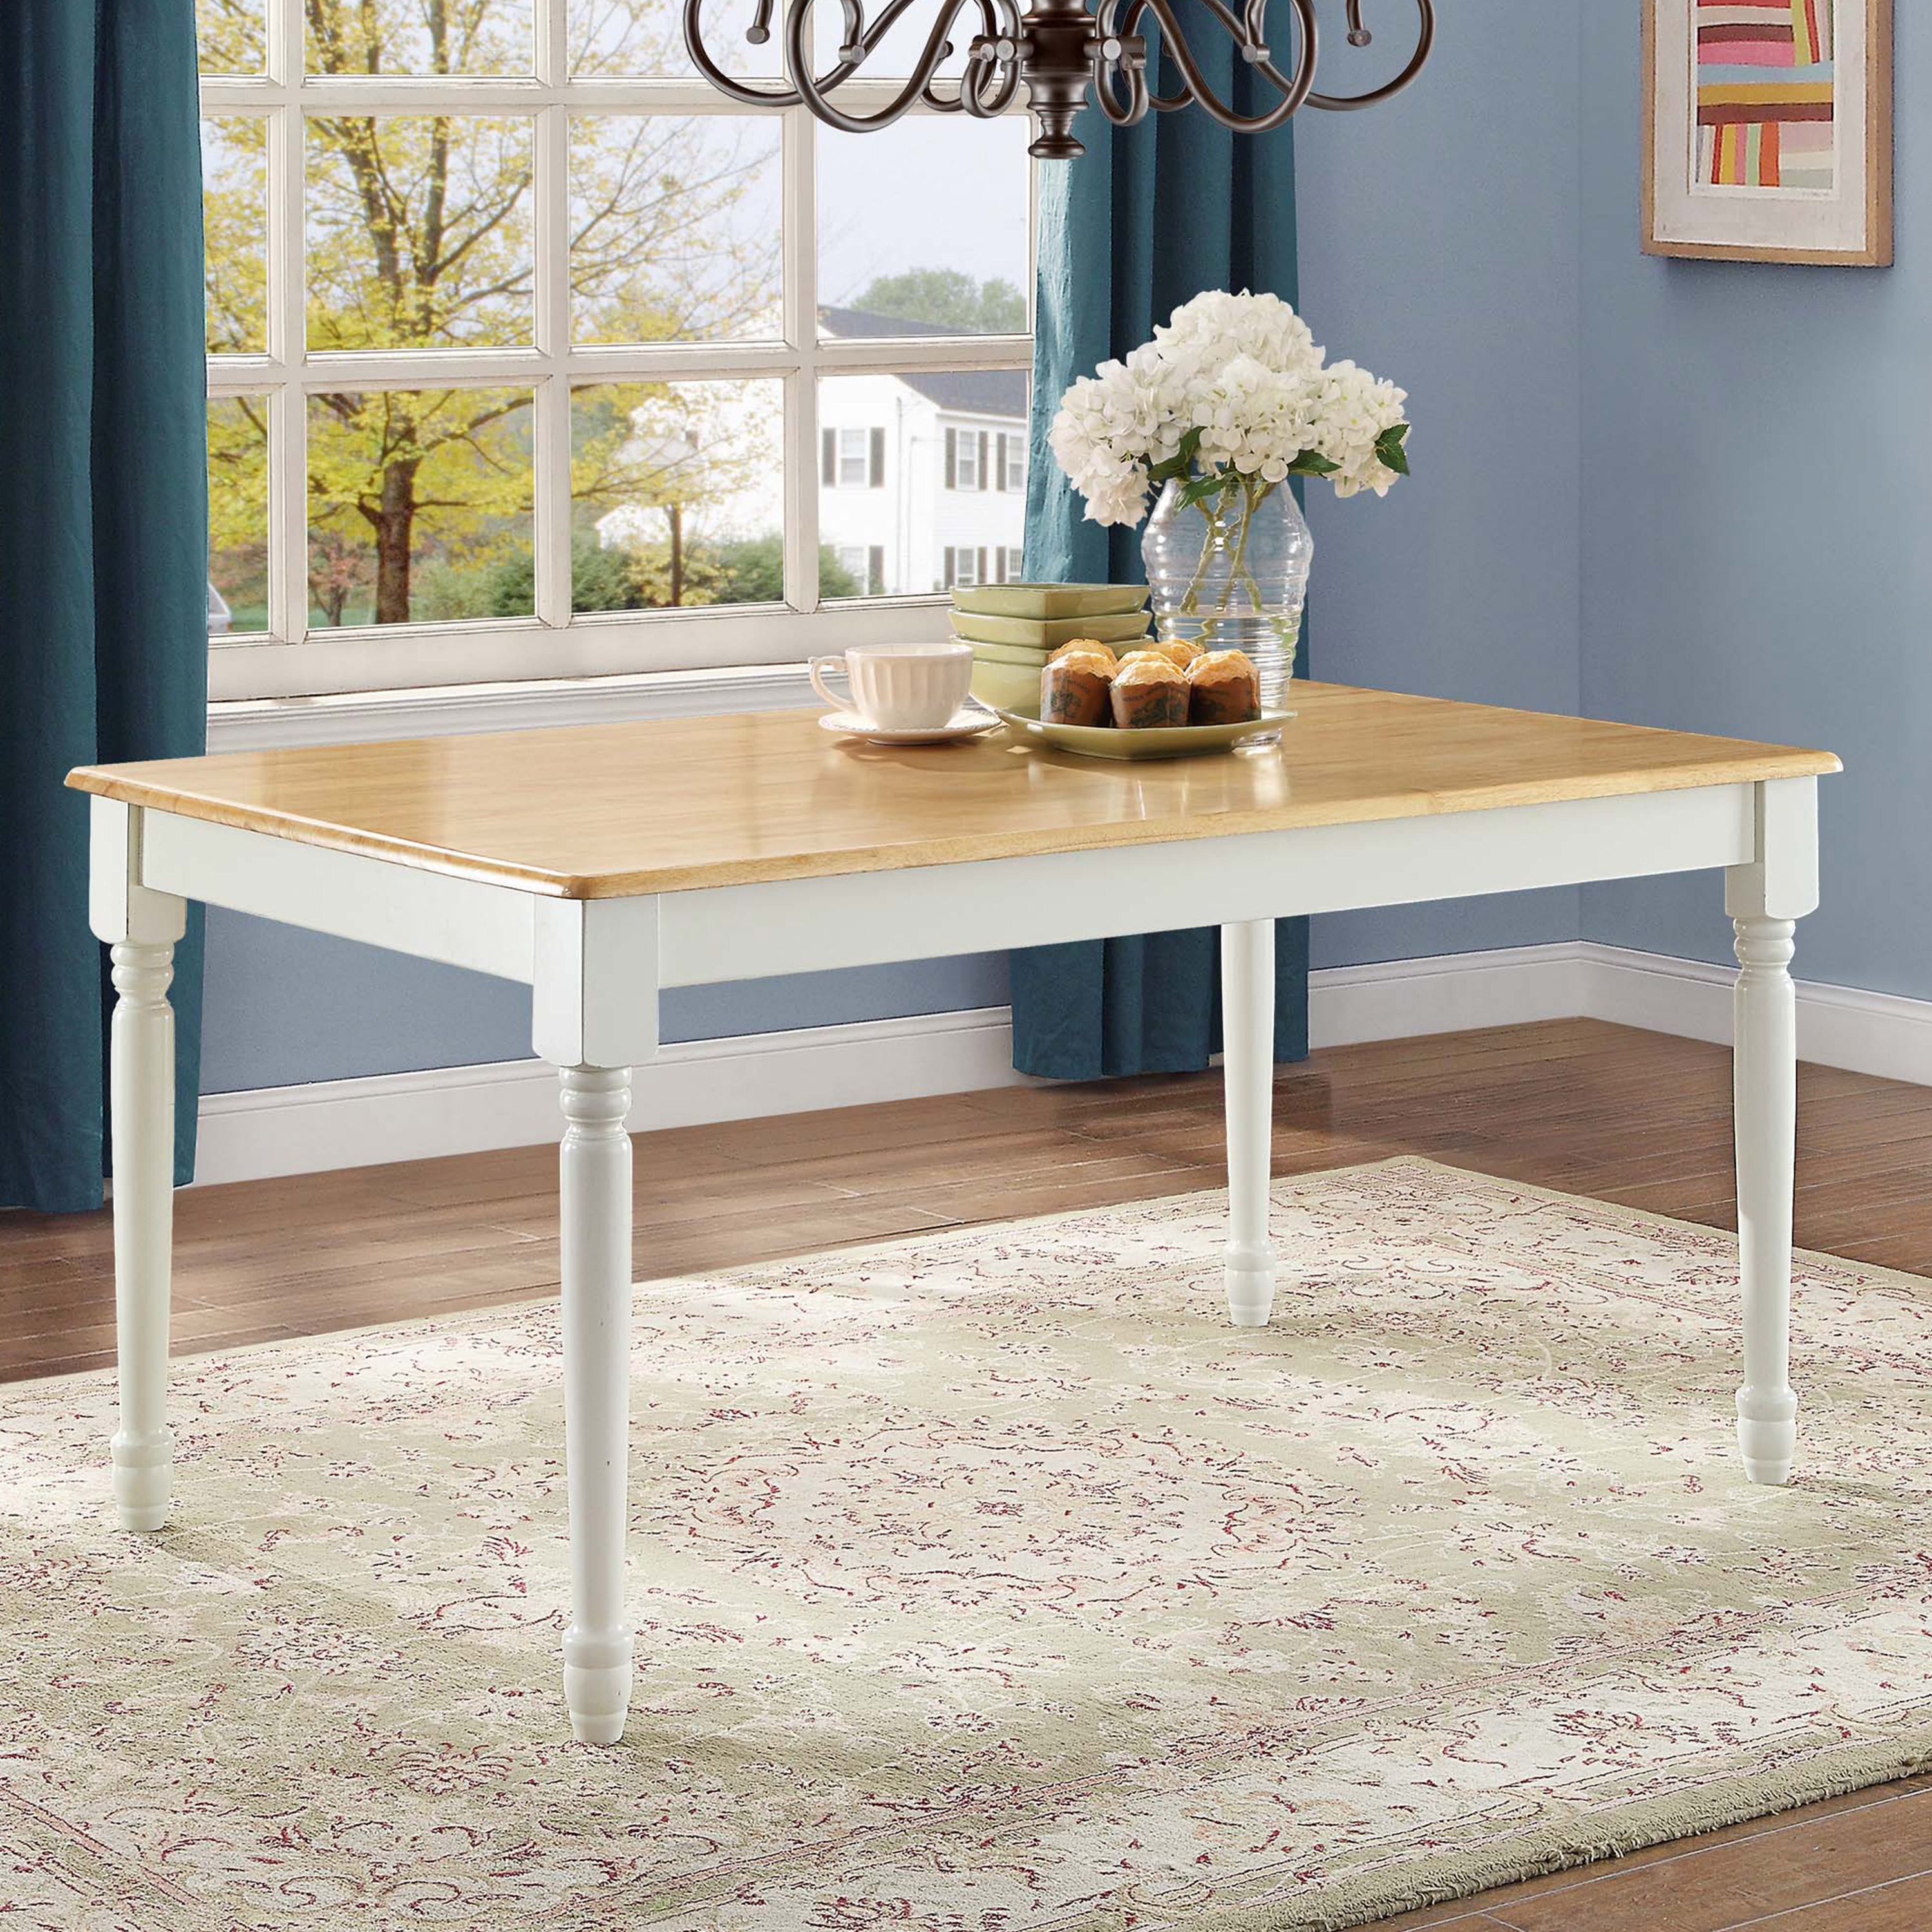 Moorehead 3 Piece Counter Height Dining Sets Within Most Up To Date Kitchen & Dining Furniture – Walmart (View 15 of 20)